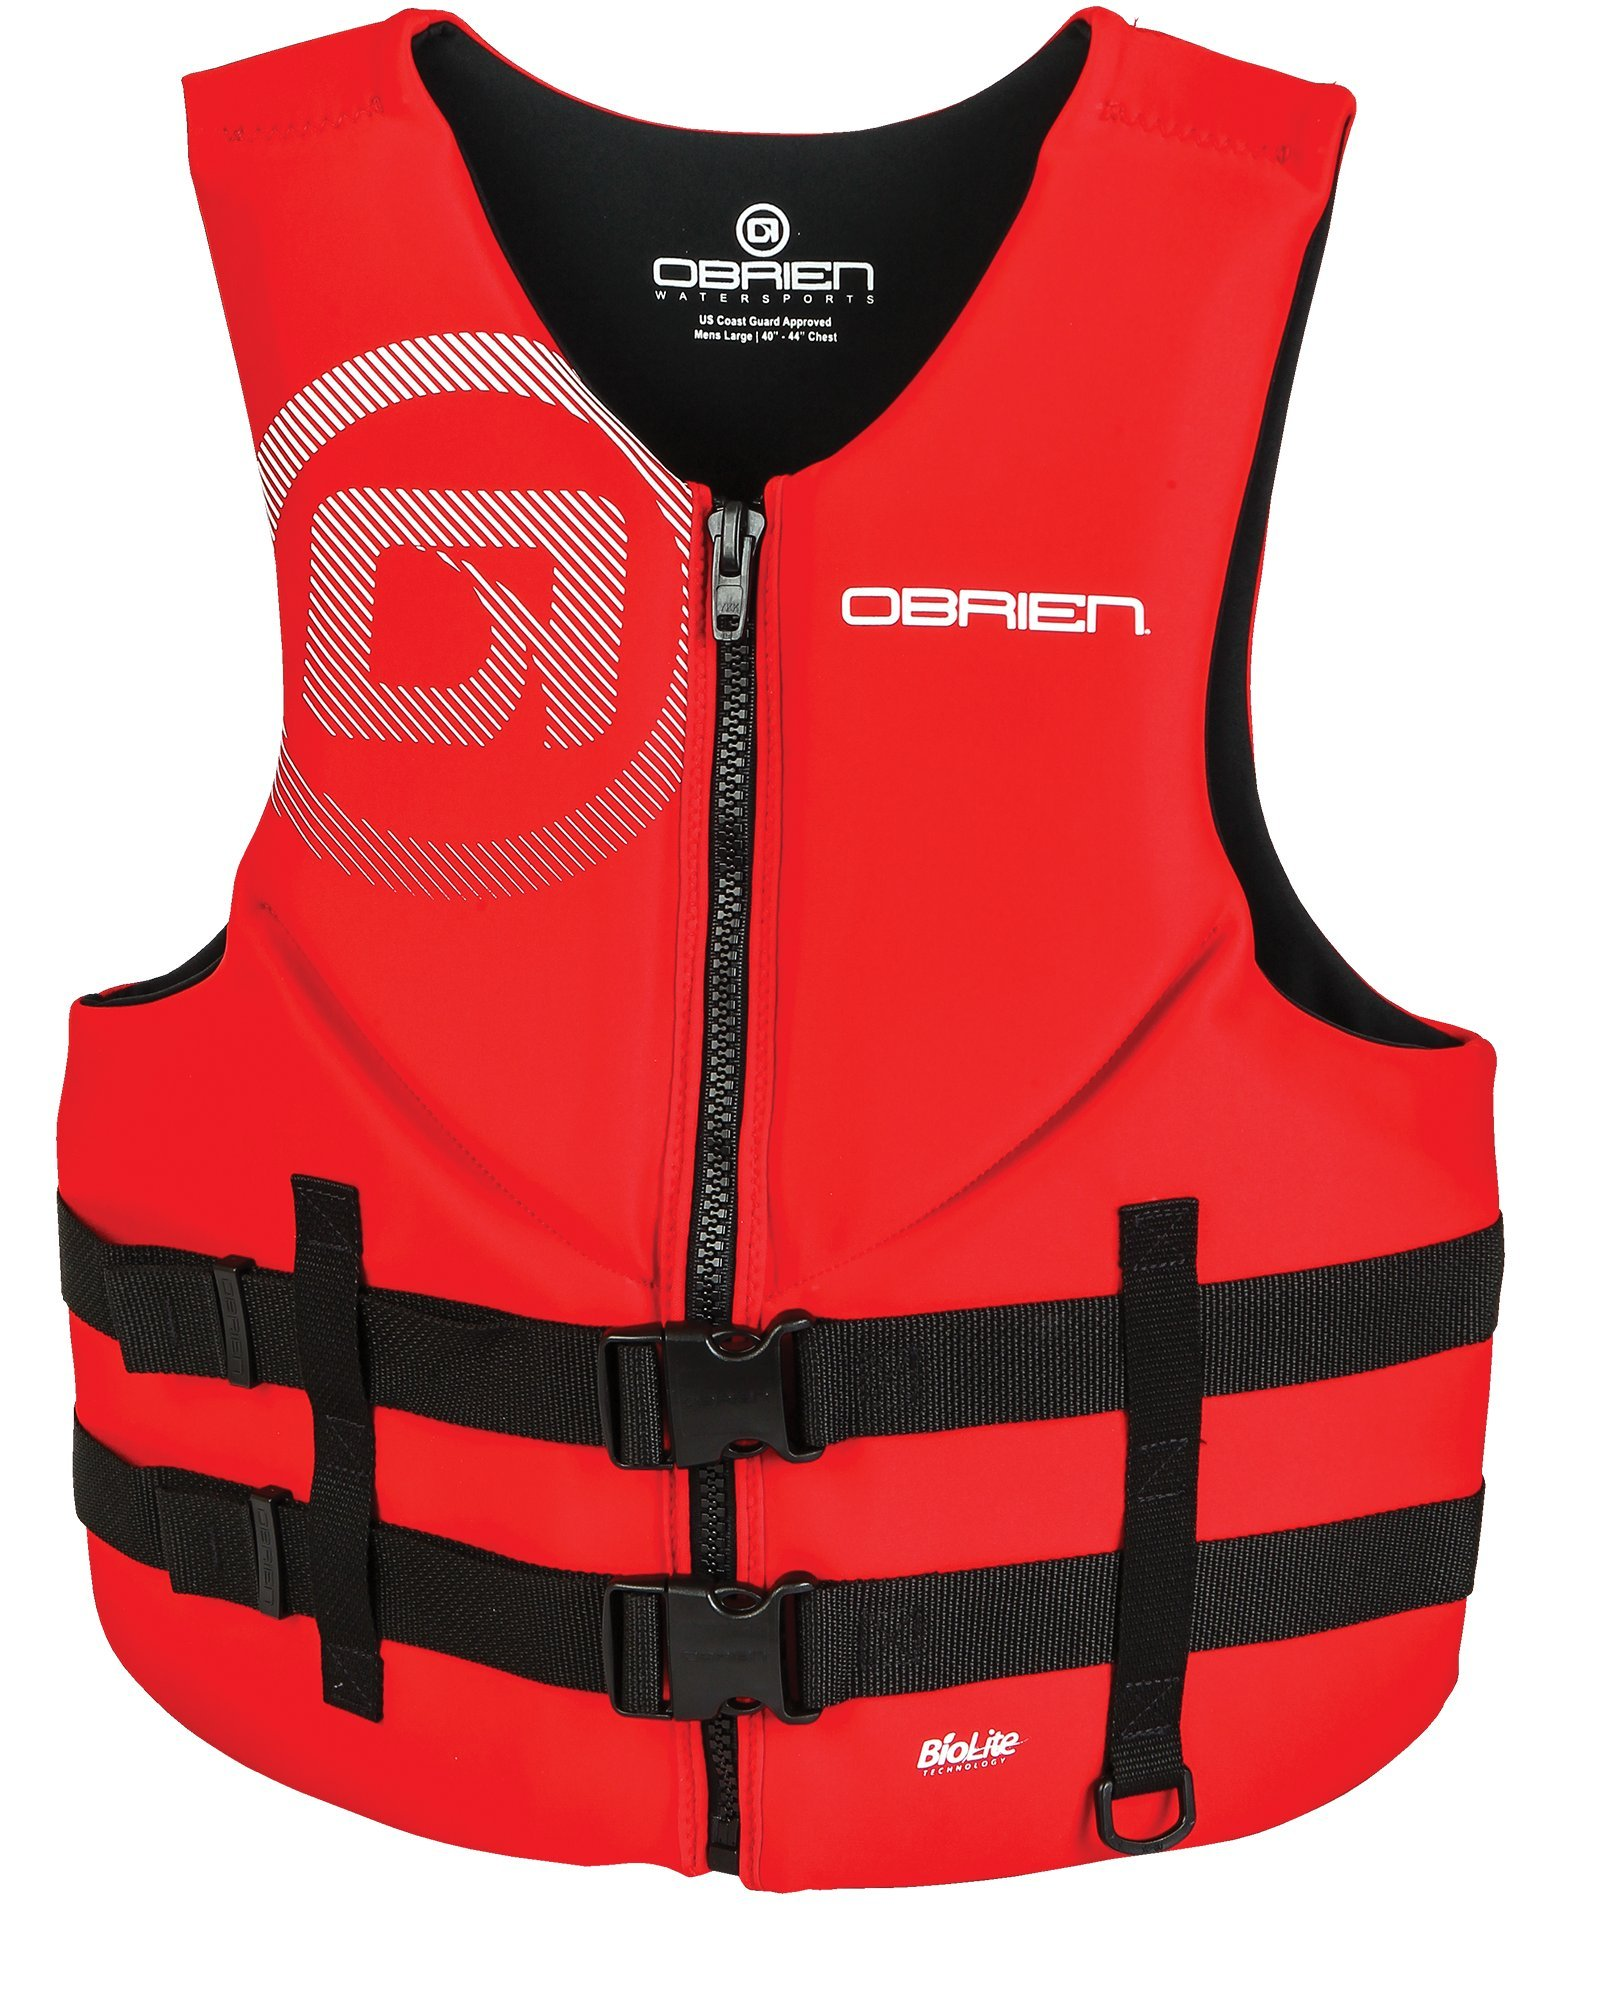 O'Brien Men's Traditional Neoprene Life Jacket, Red, XX-Large by O'Brien